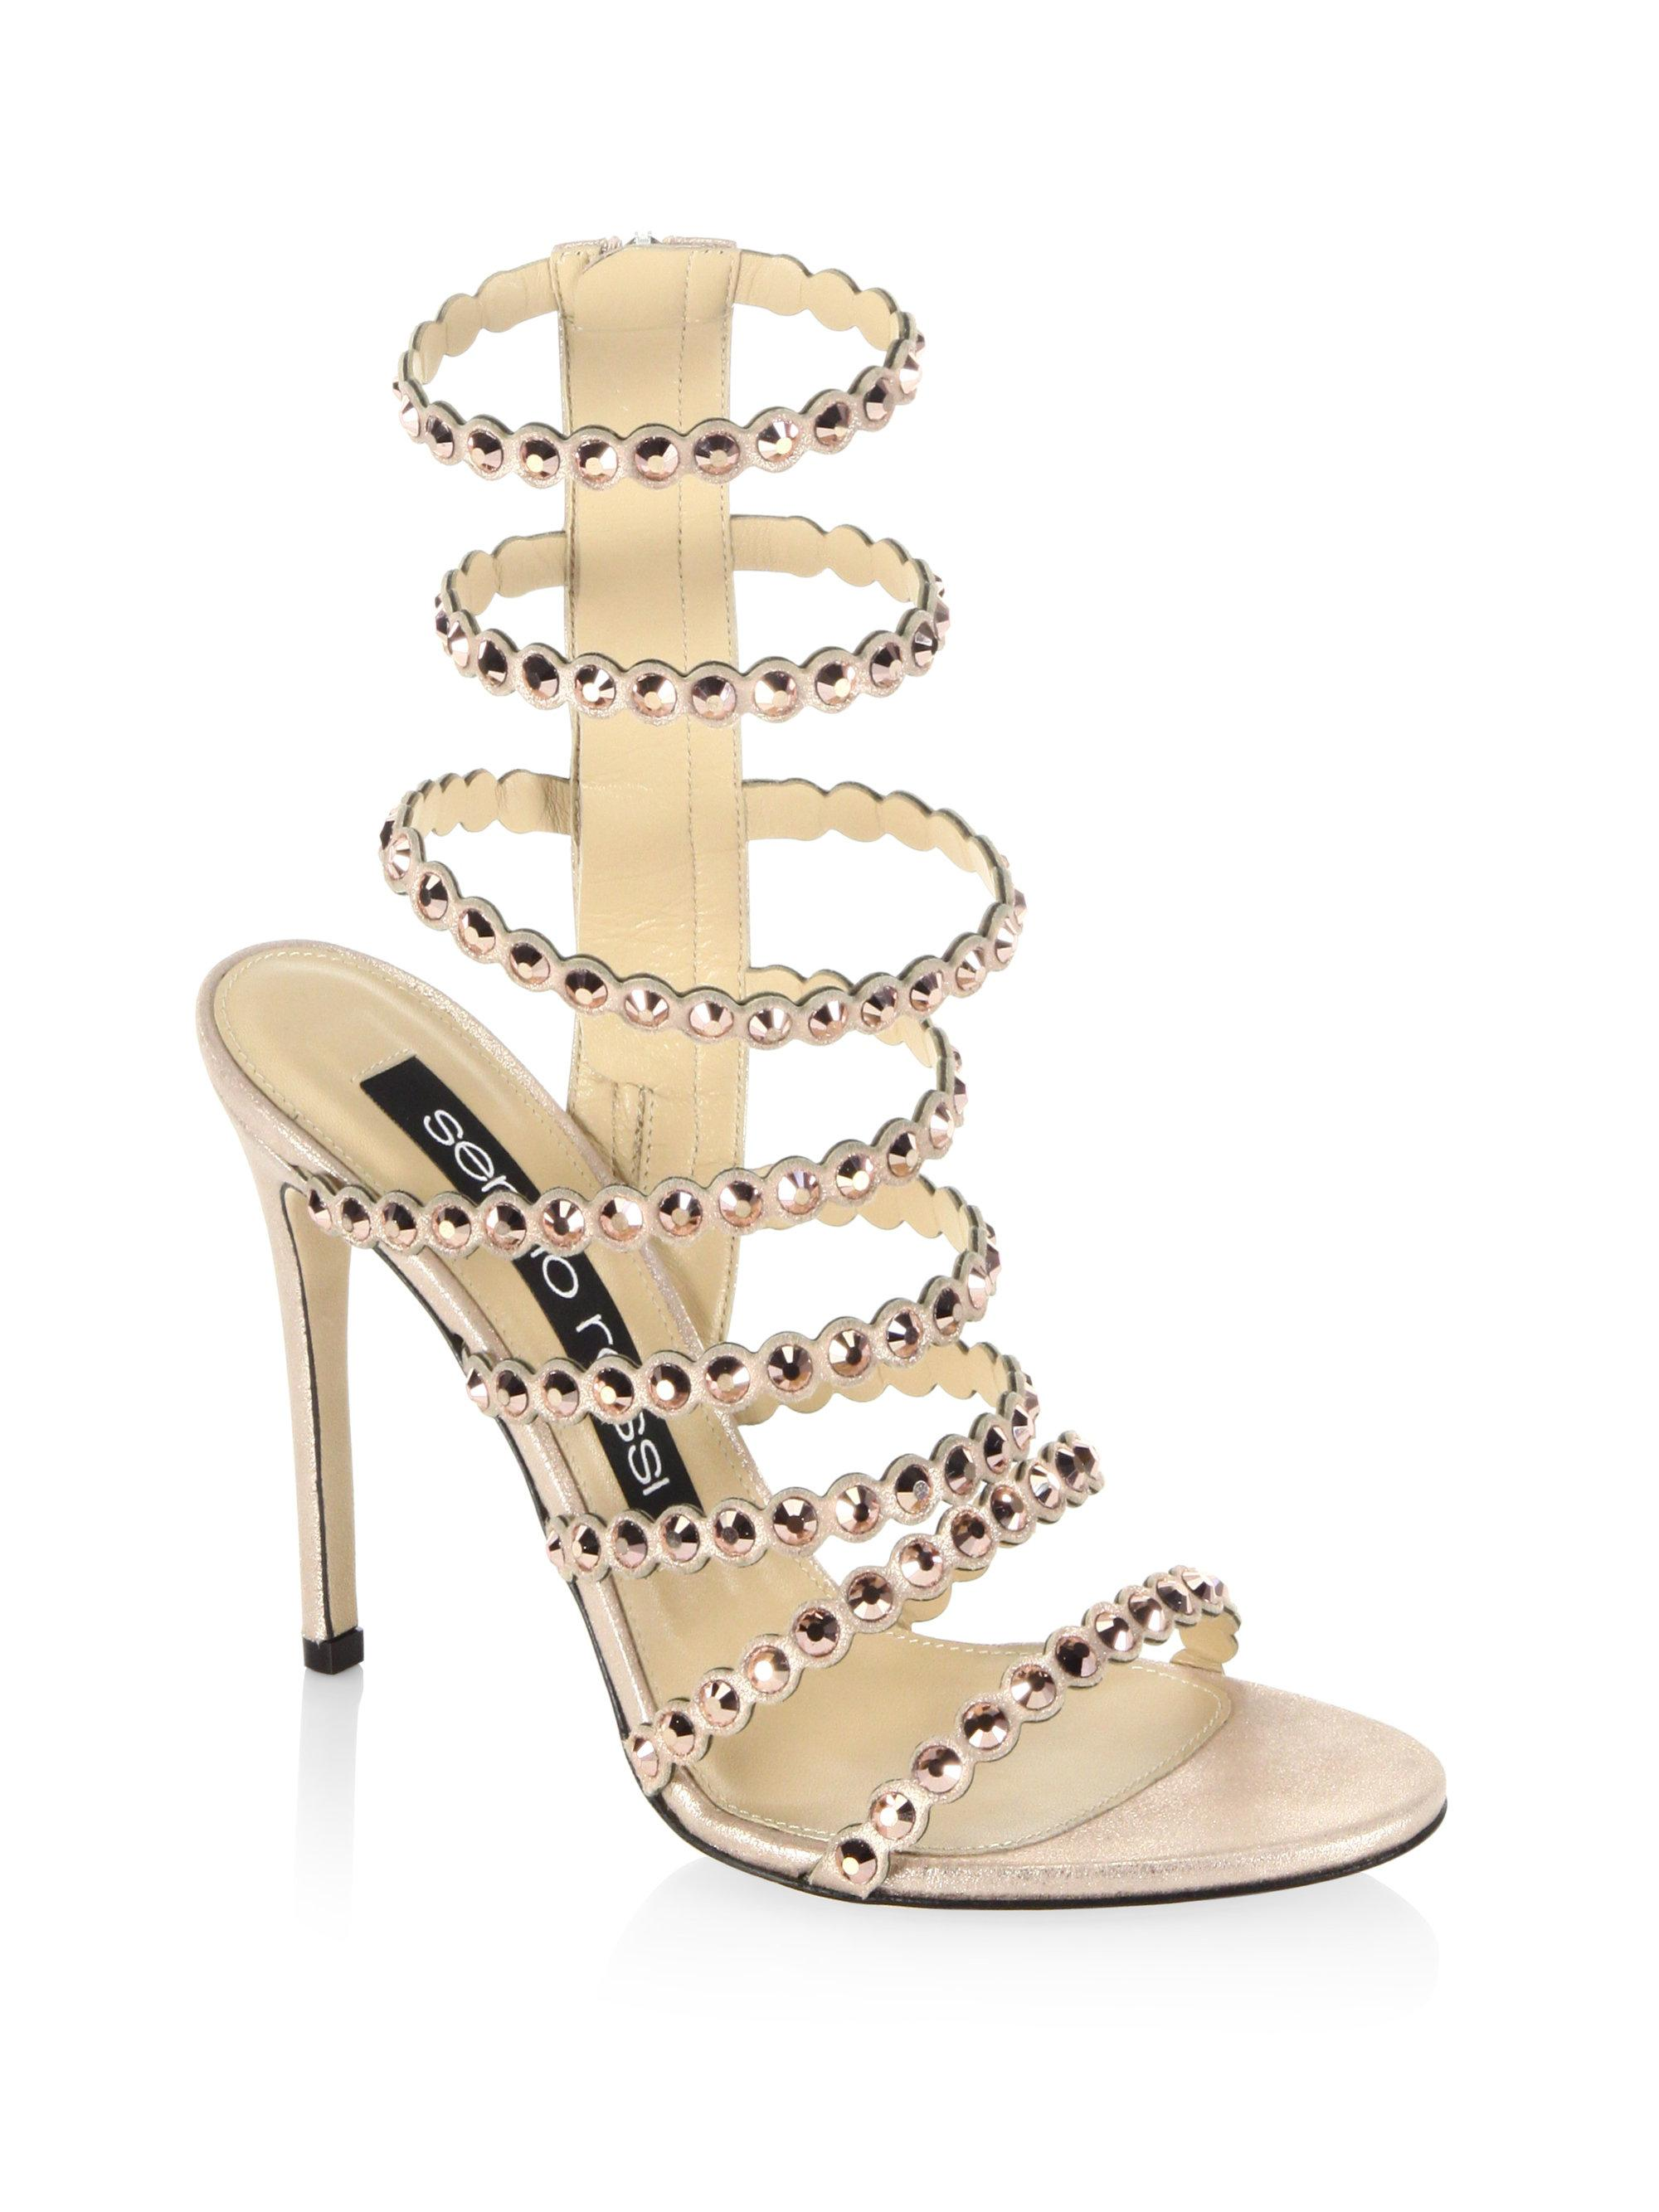 low price fee shipping cheap price lowest price cheap price Sergio Rossi Snakeskin Slingback Sandals QpdK5t